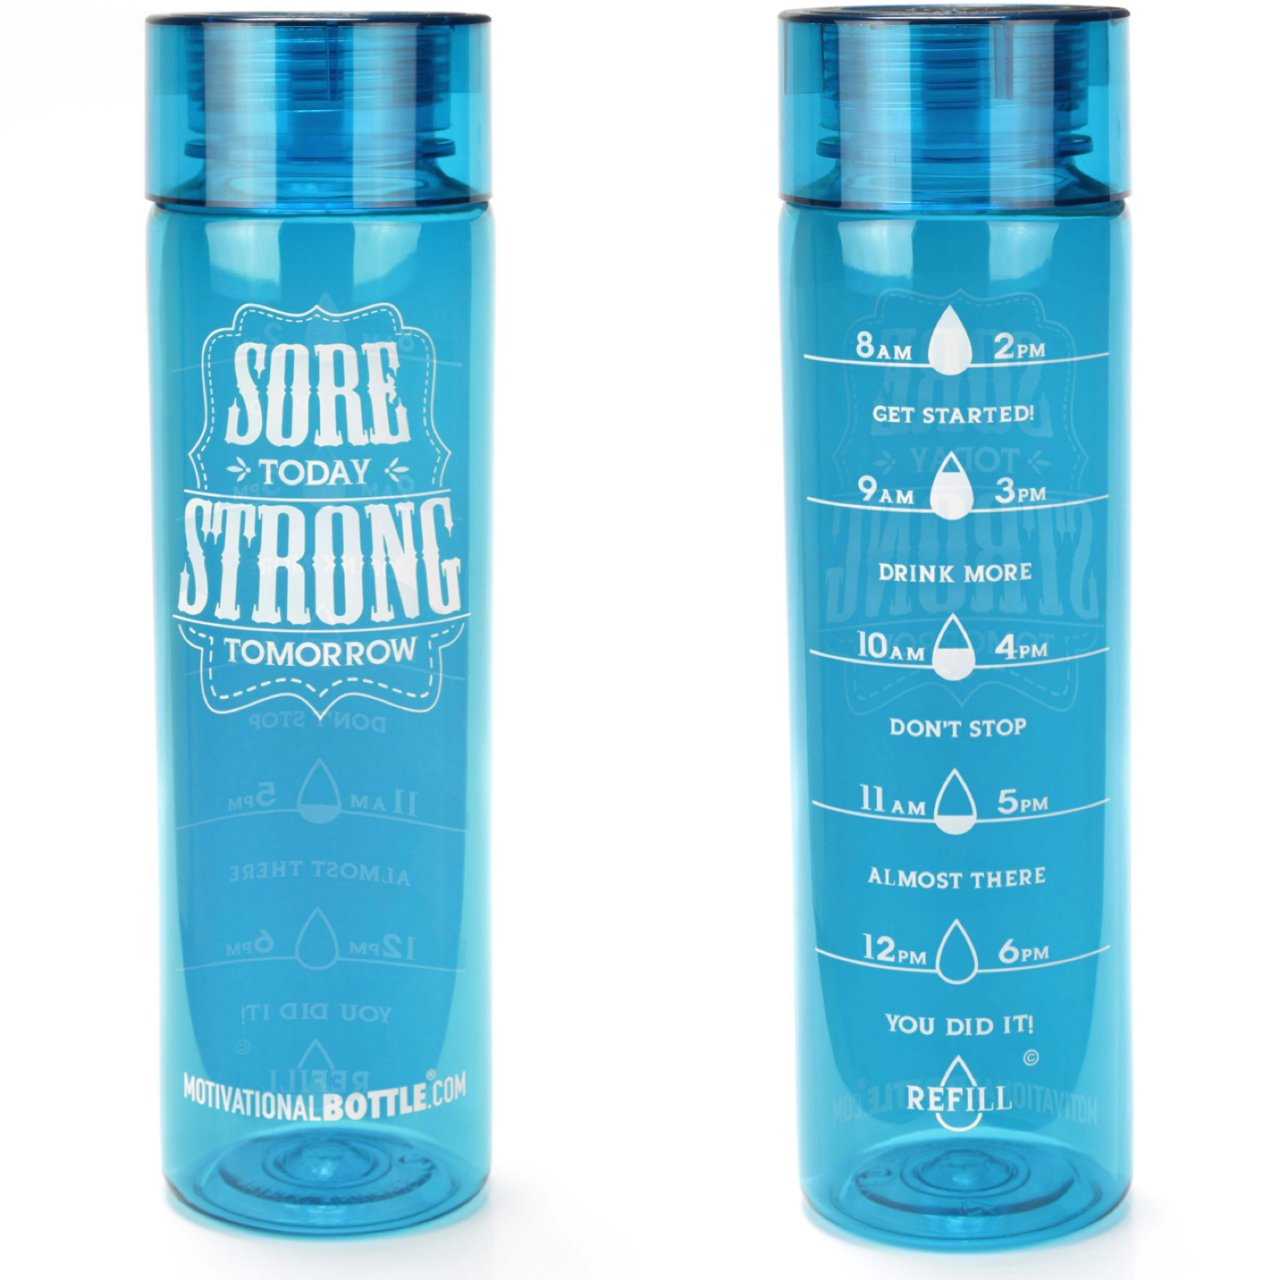 32oz Motivational Bottle Fitness Workout Sports Water Bottle with Unique Timeline | Measurements | Goal Marked Times For Measuring Your Daily Water Intake, BPA Free Non-toxic Tritan (aqua) by Motivational Bottle